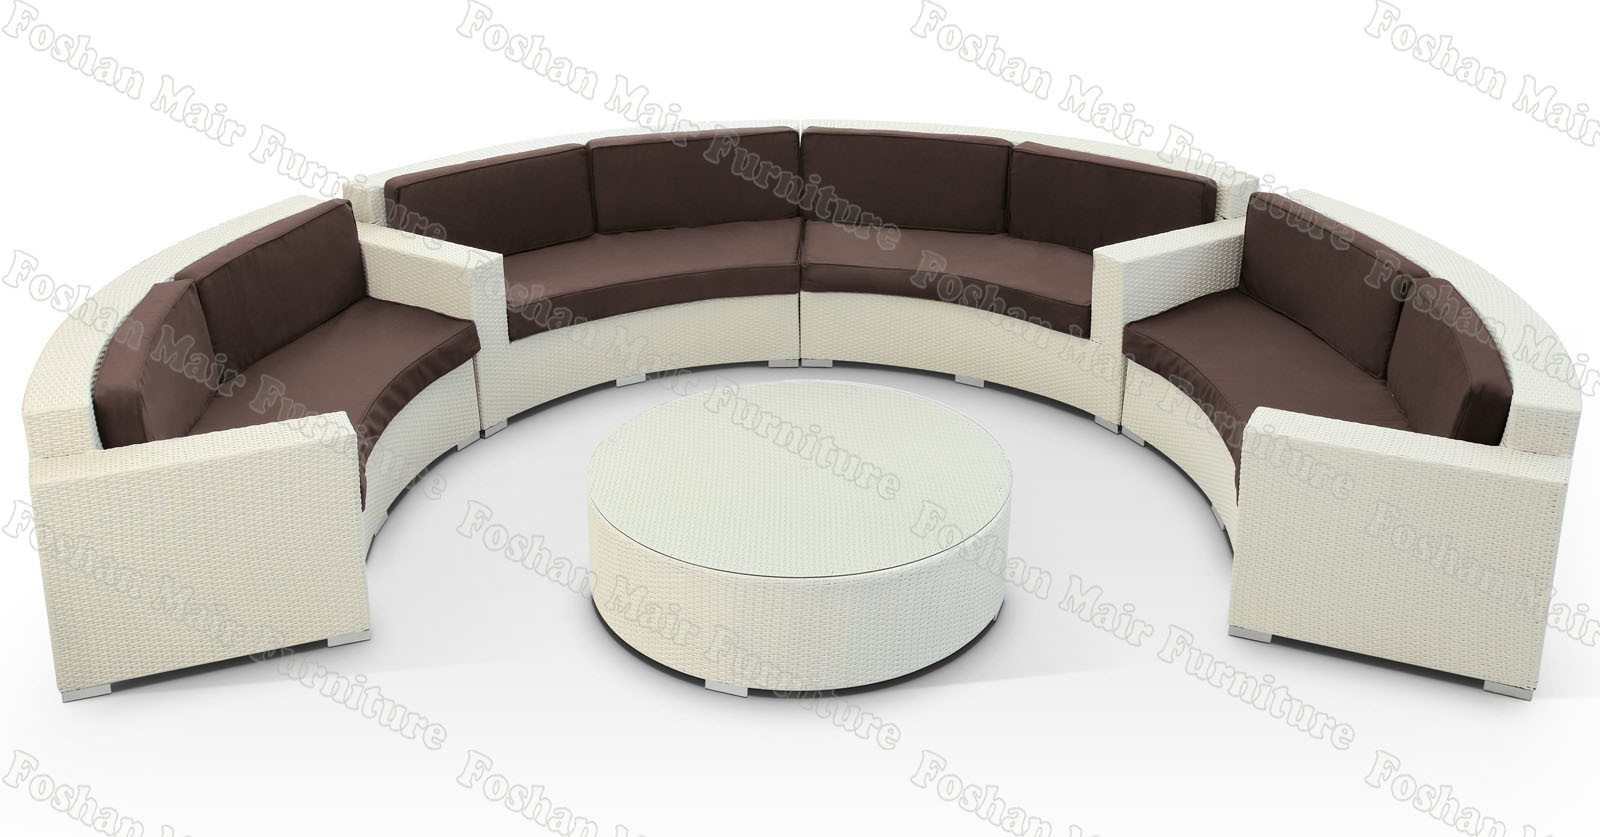 Circular Rattan Sofa Set picture on product_Outdoor Rattan Semi Circular Sofa Suite Set M5S409 _esroyhurg with Circular Rattan Sofa Set, sofa d93de2cde348ae2b938aabdc43376003